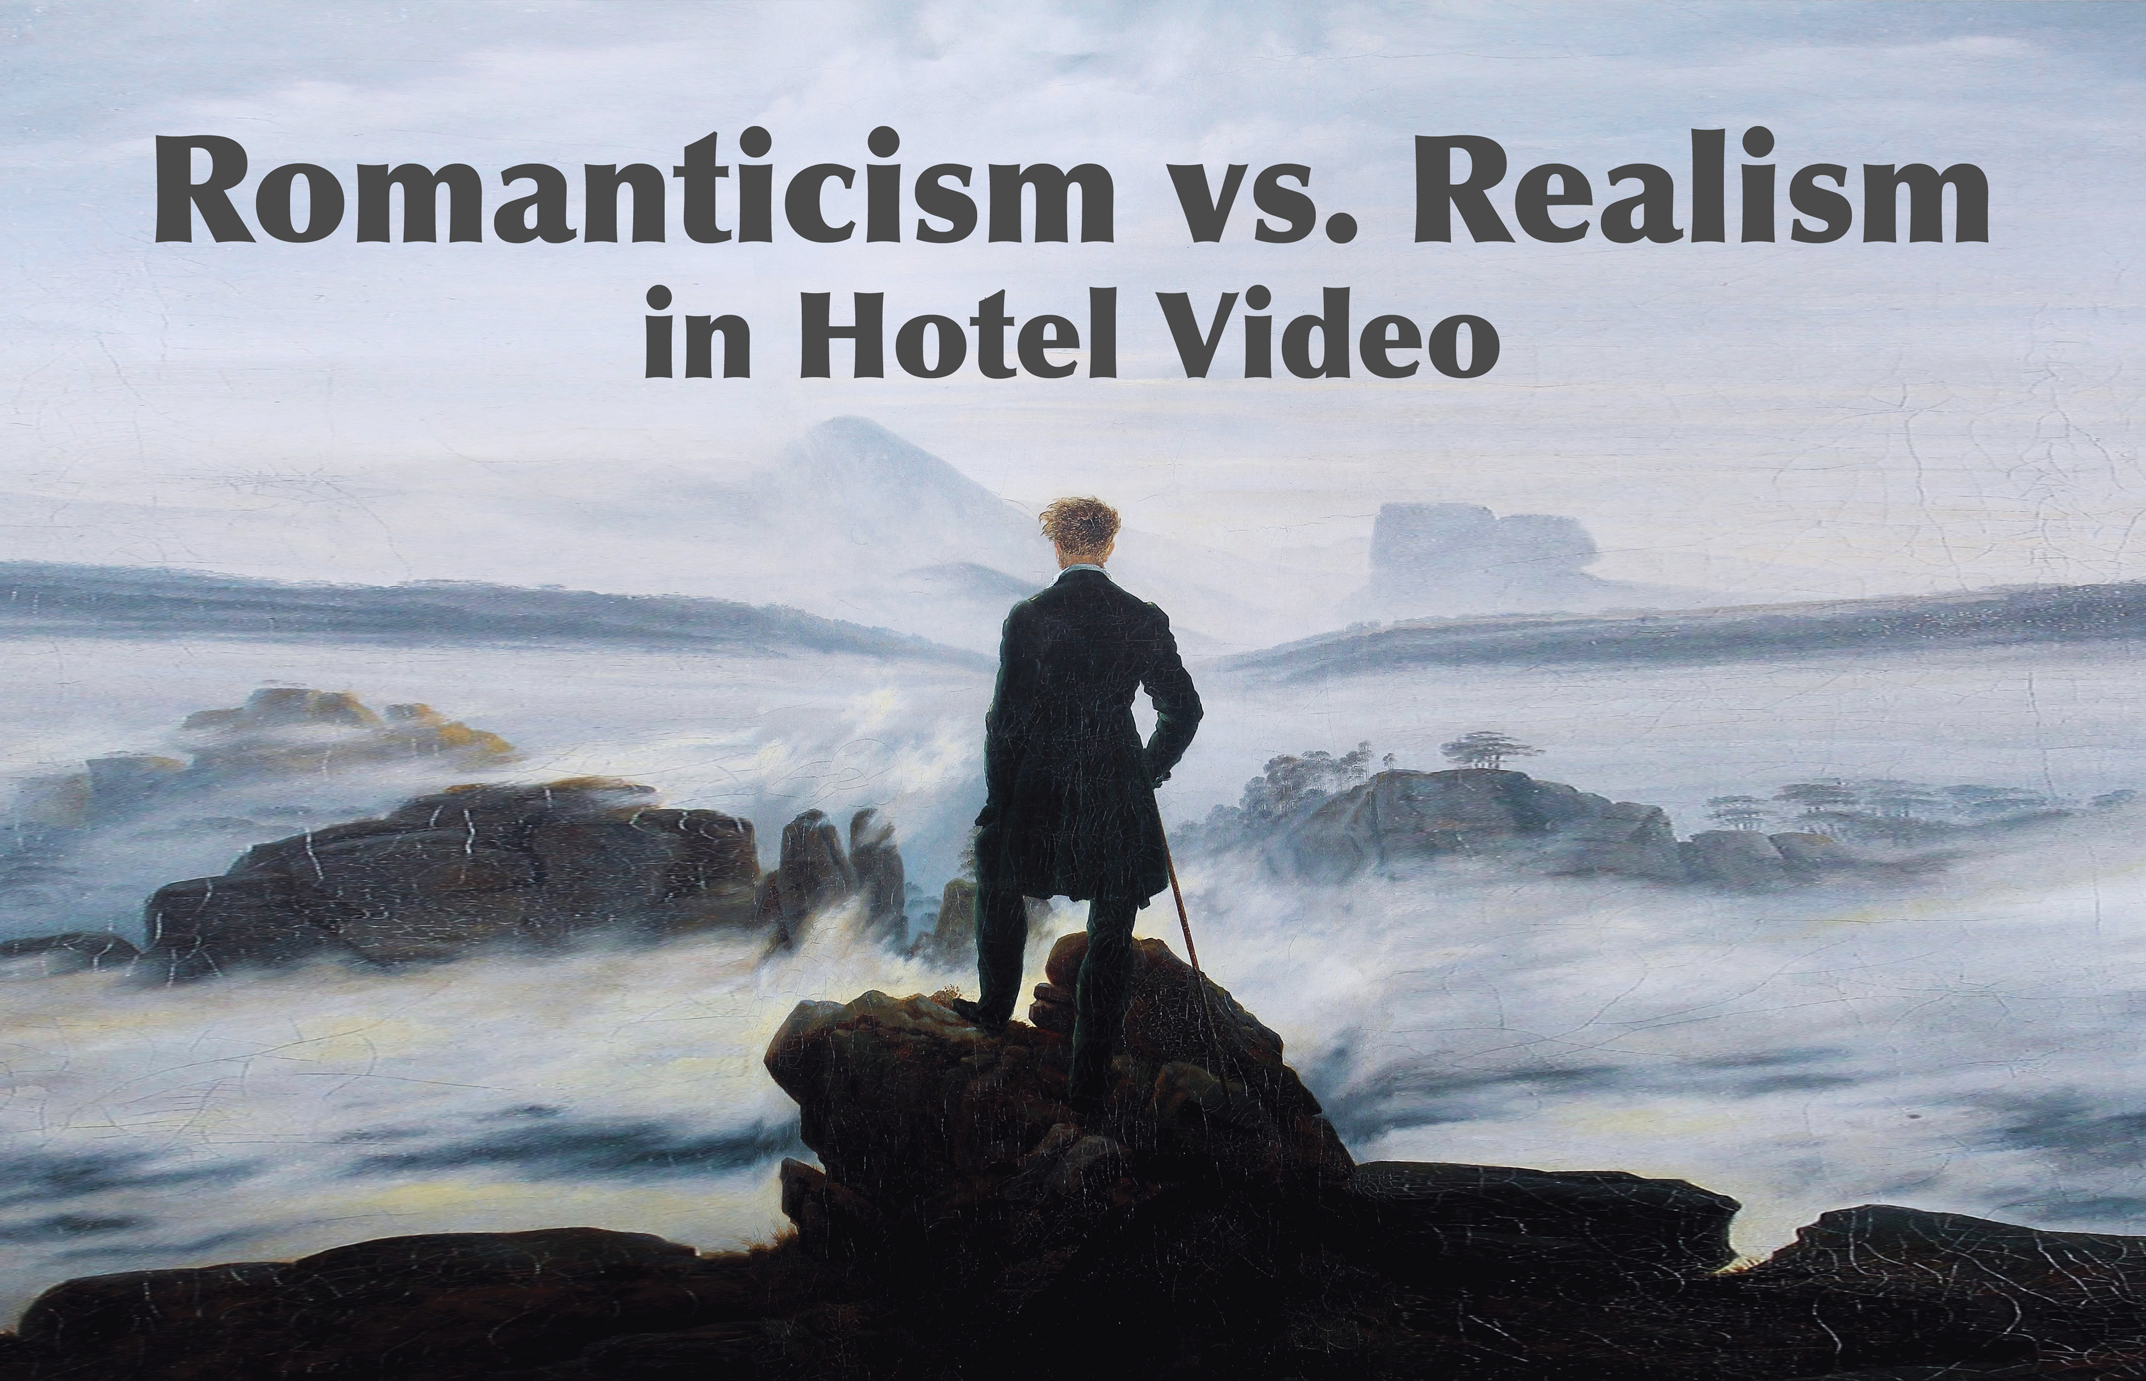 Romanticism vs. Realism in Hotel Video